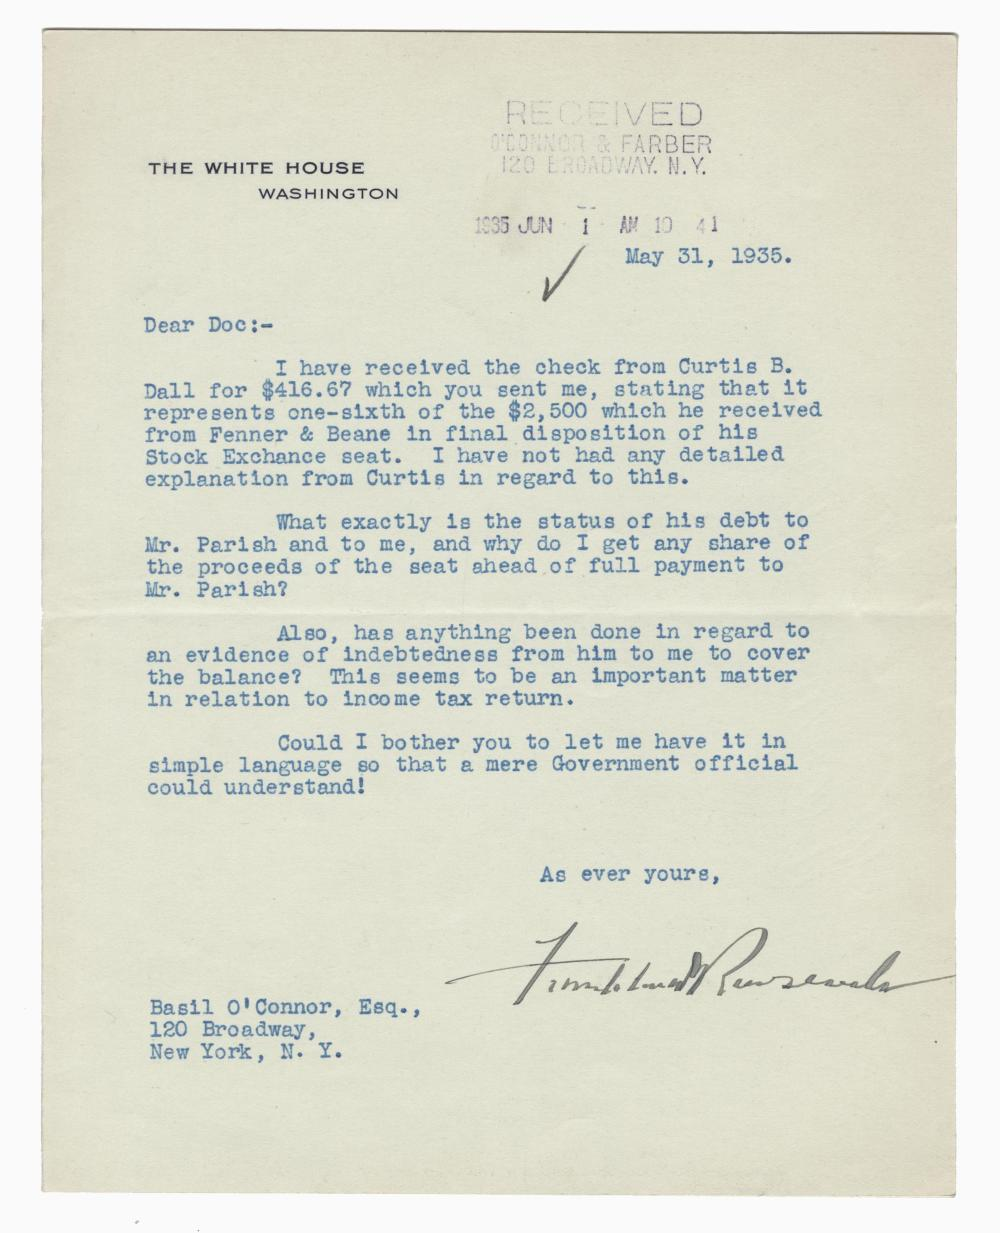 Franklin Roosevelt W. H. Letter Re: The Sale of a Stock Exchange Seat During the Depression